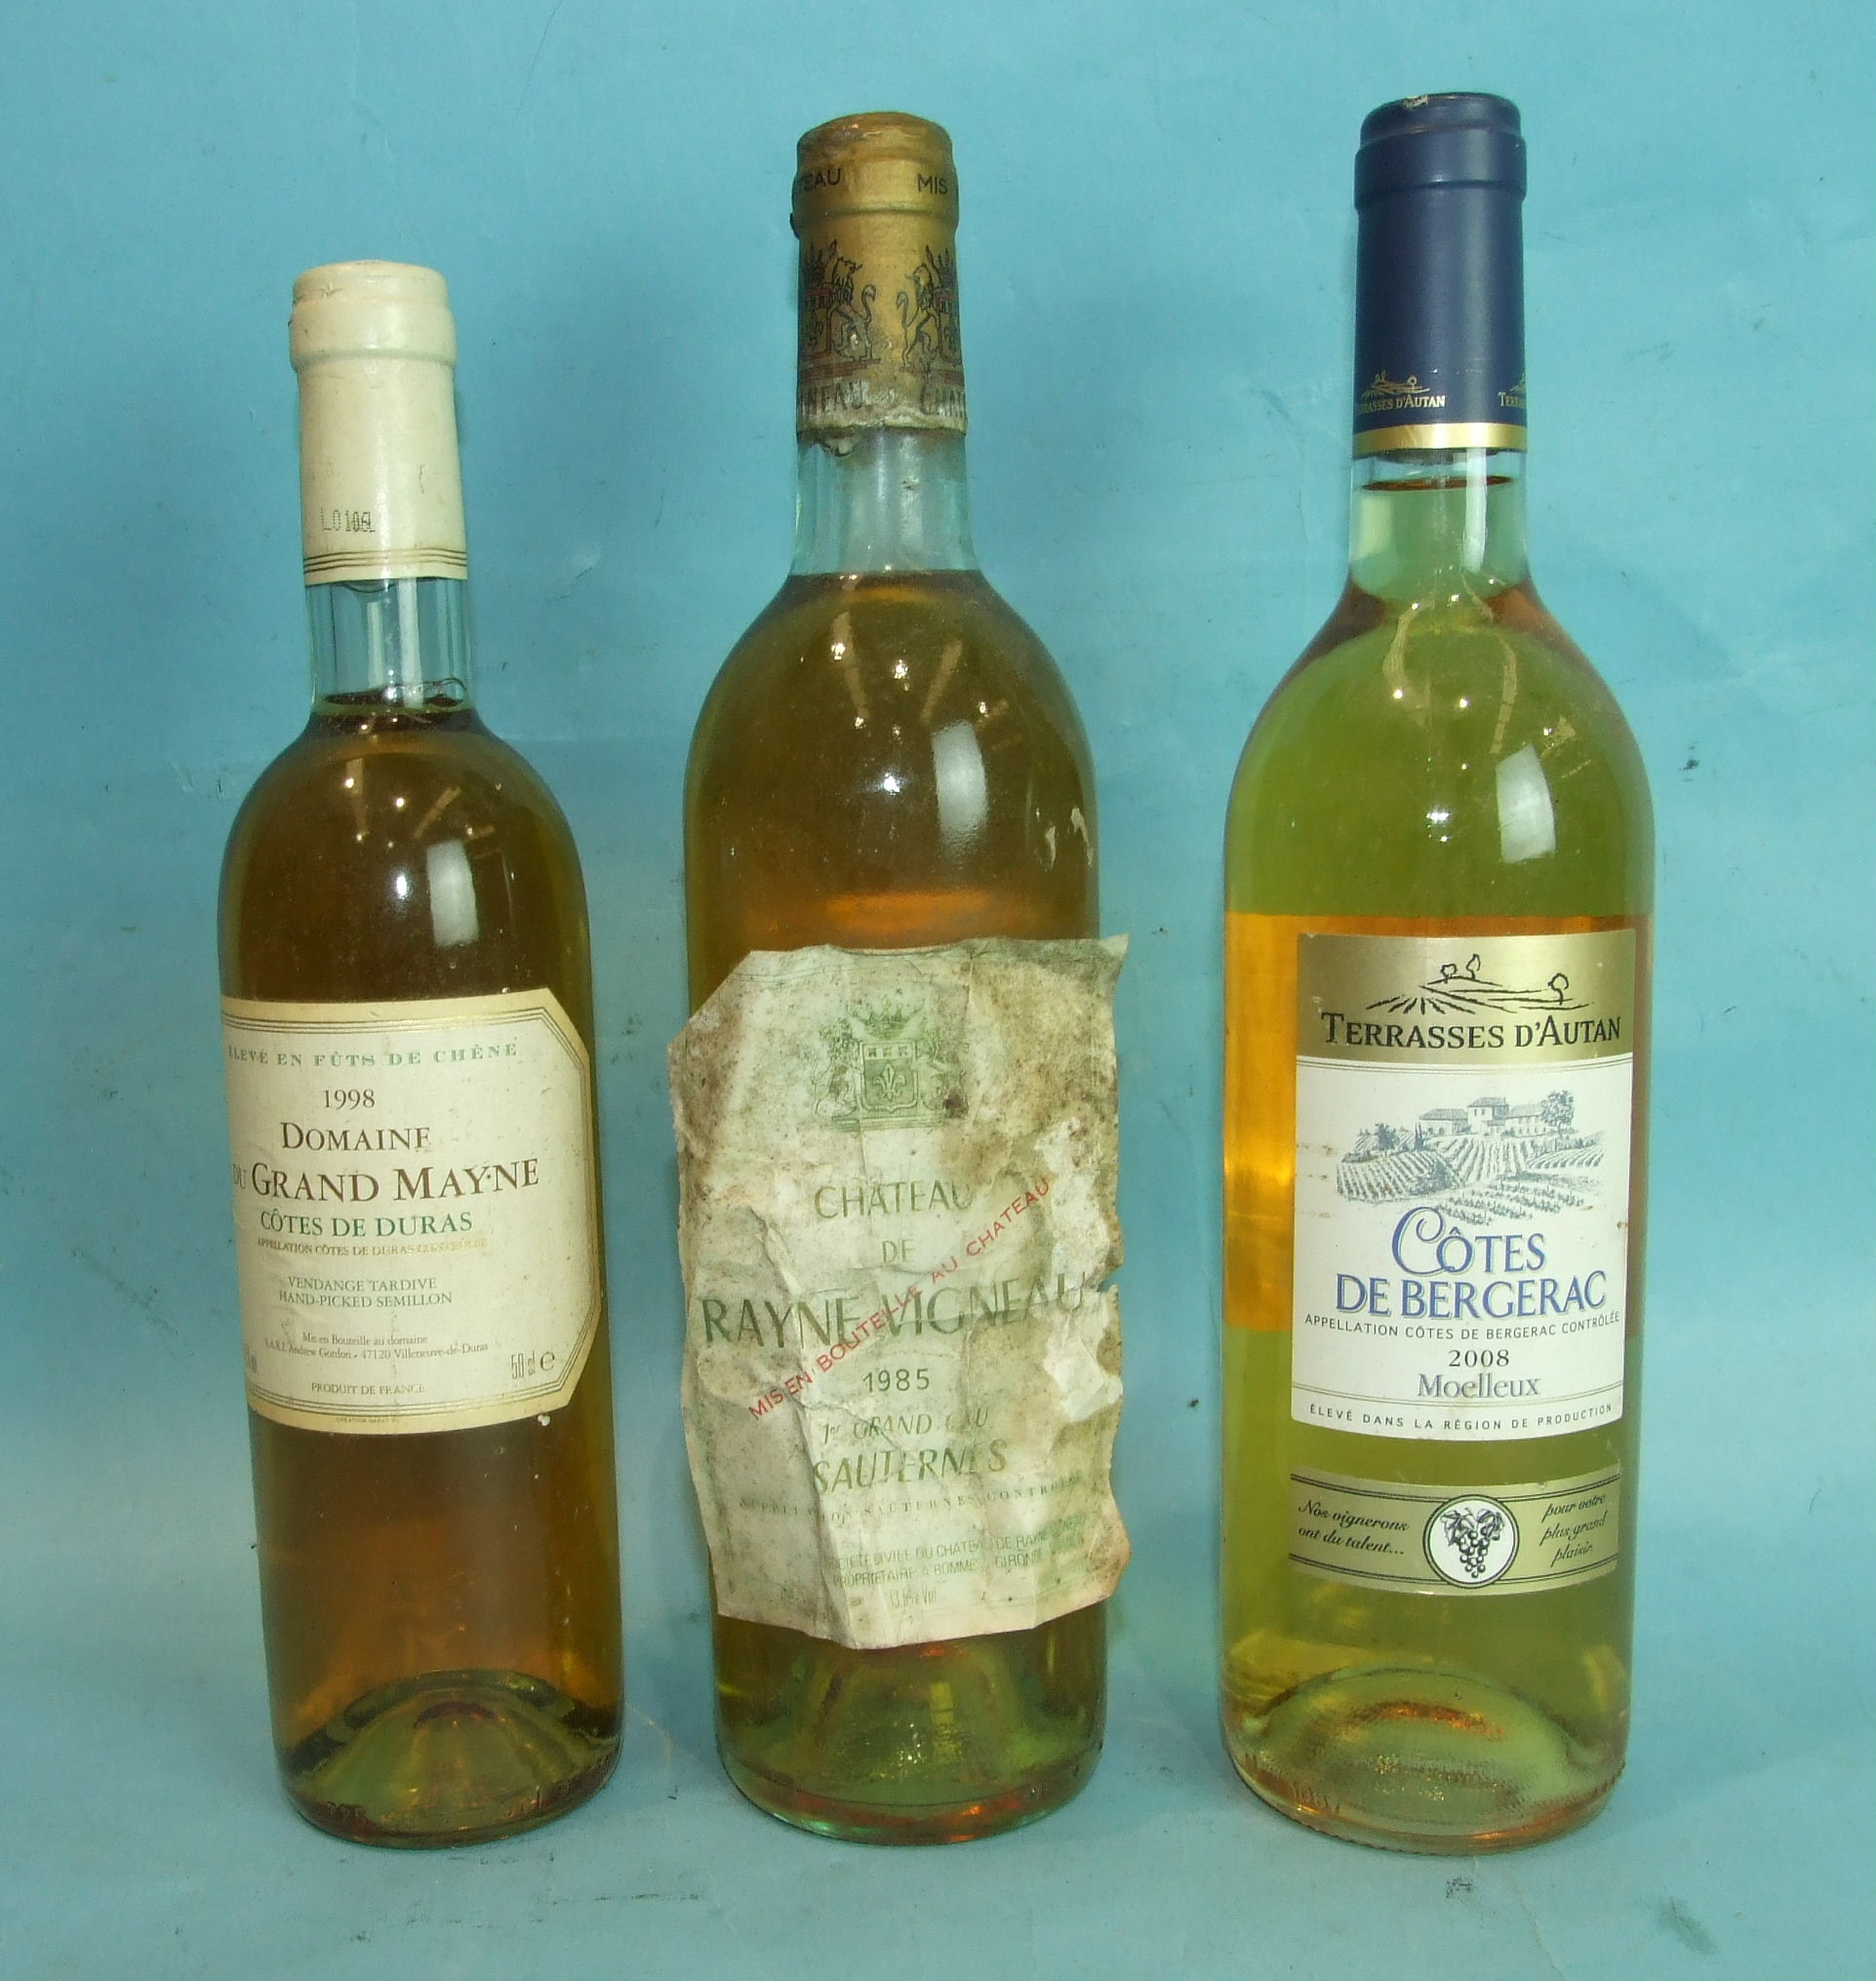 Lot 37 - Chateau De Rayne Vigneau 1er Grand Cru Sauternes 1985, one bottle and two others, (3).